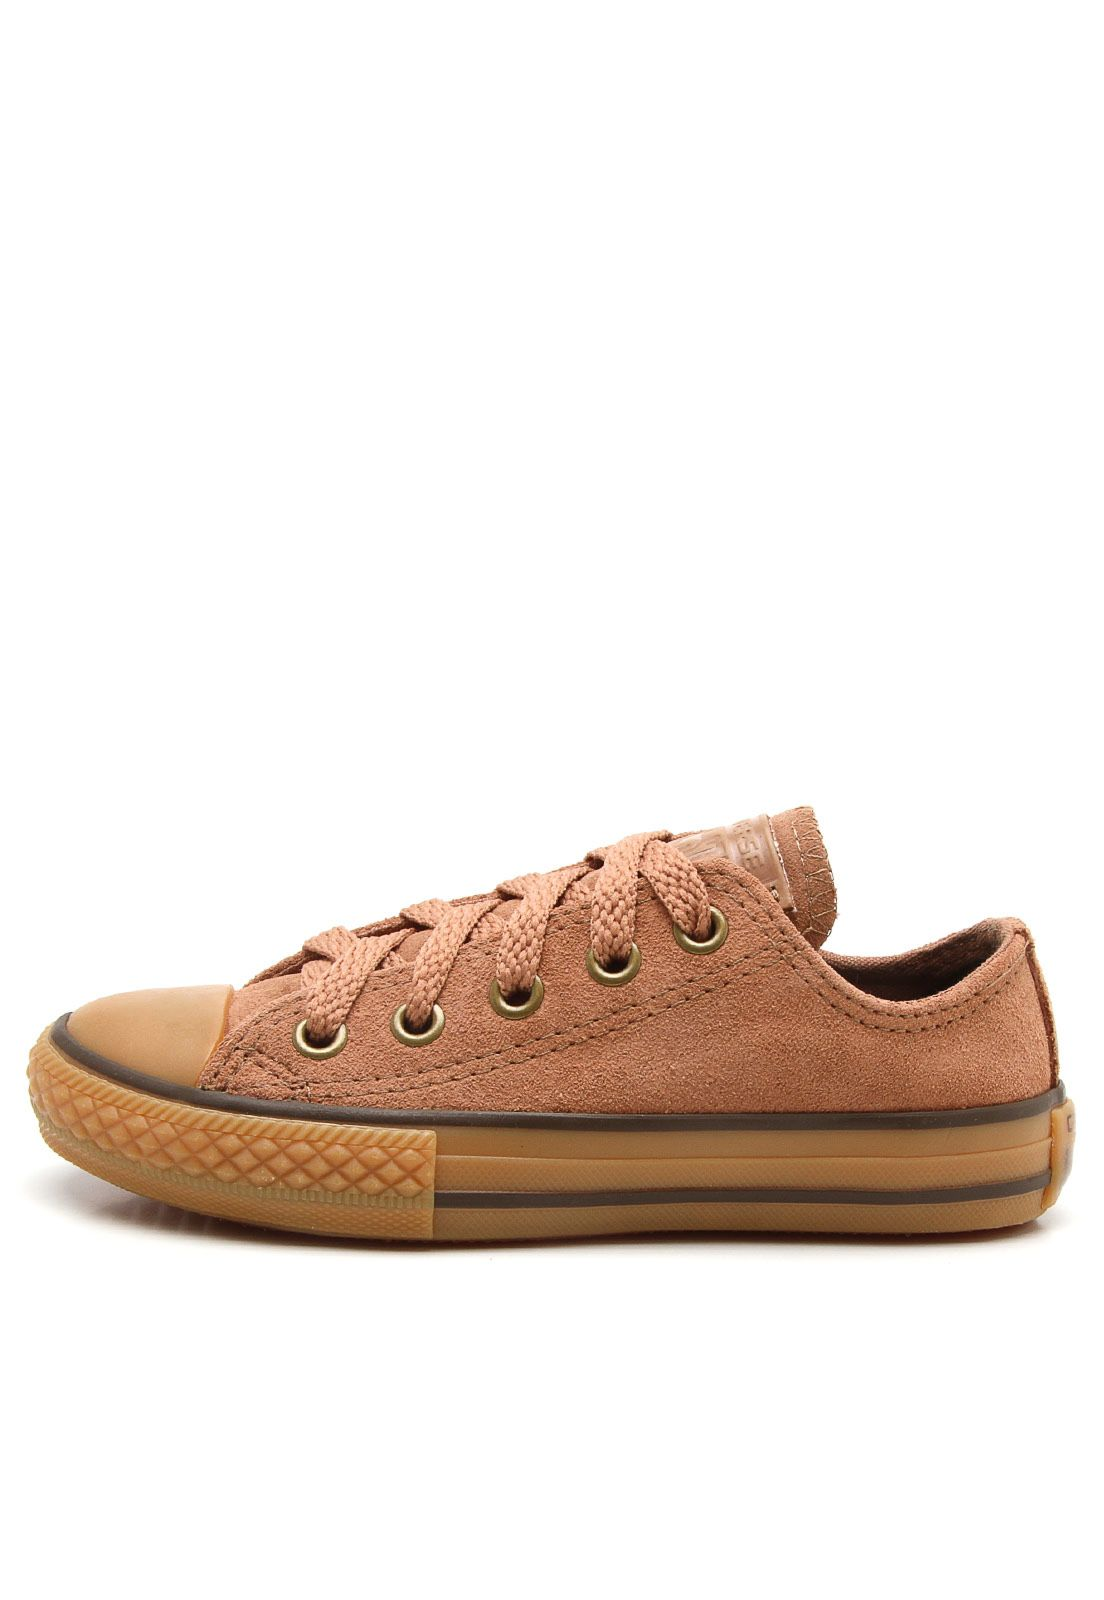 03f280671 Tênis Converse Chuck Taylor All Star Bege - Marca Converse